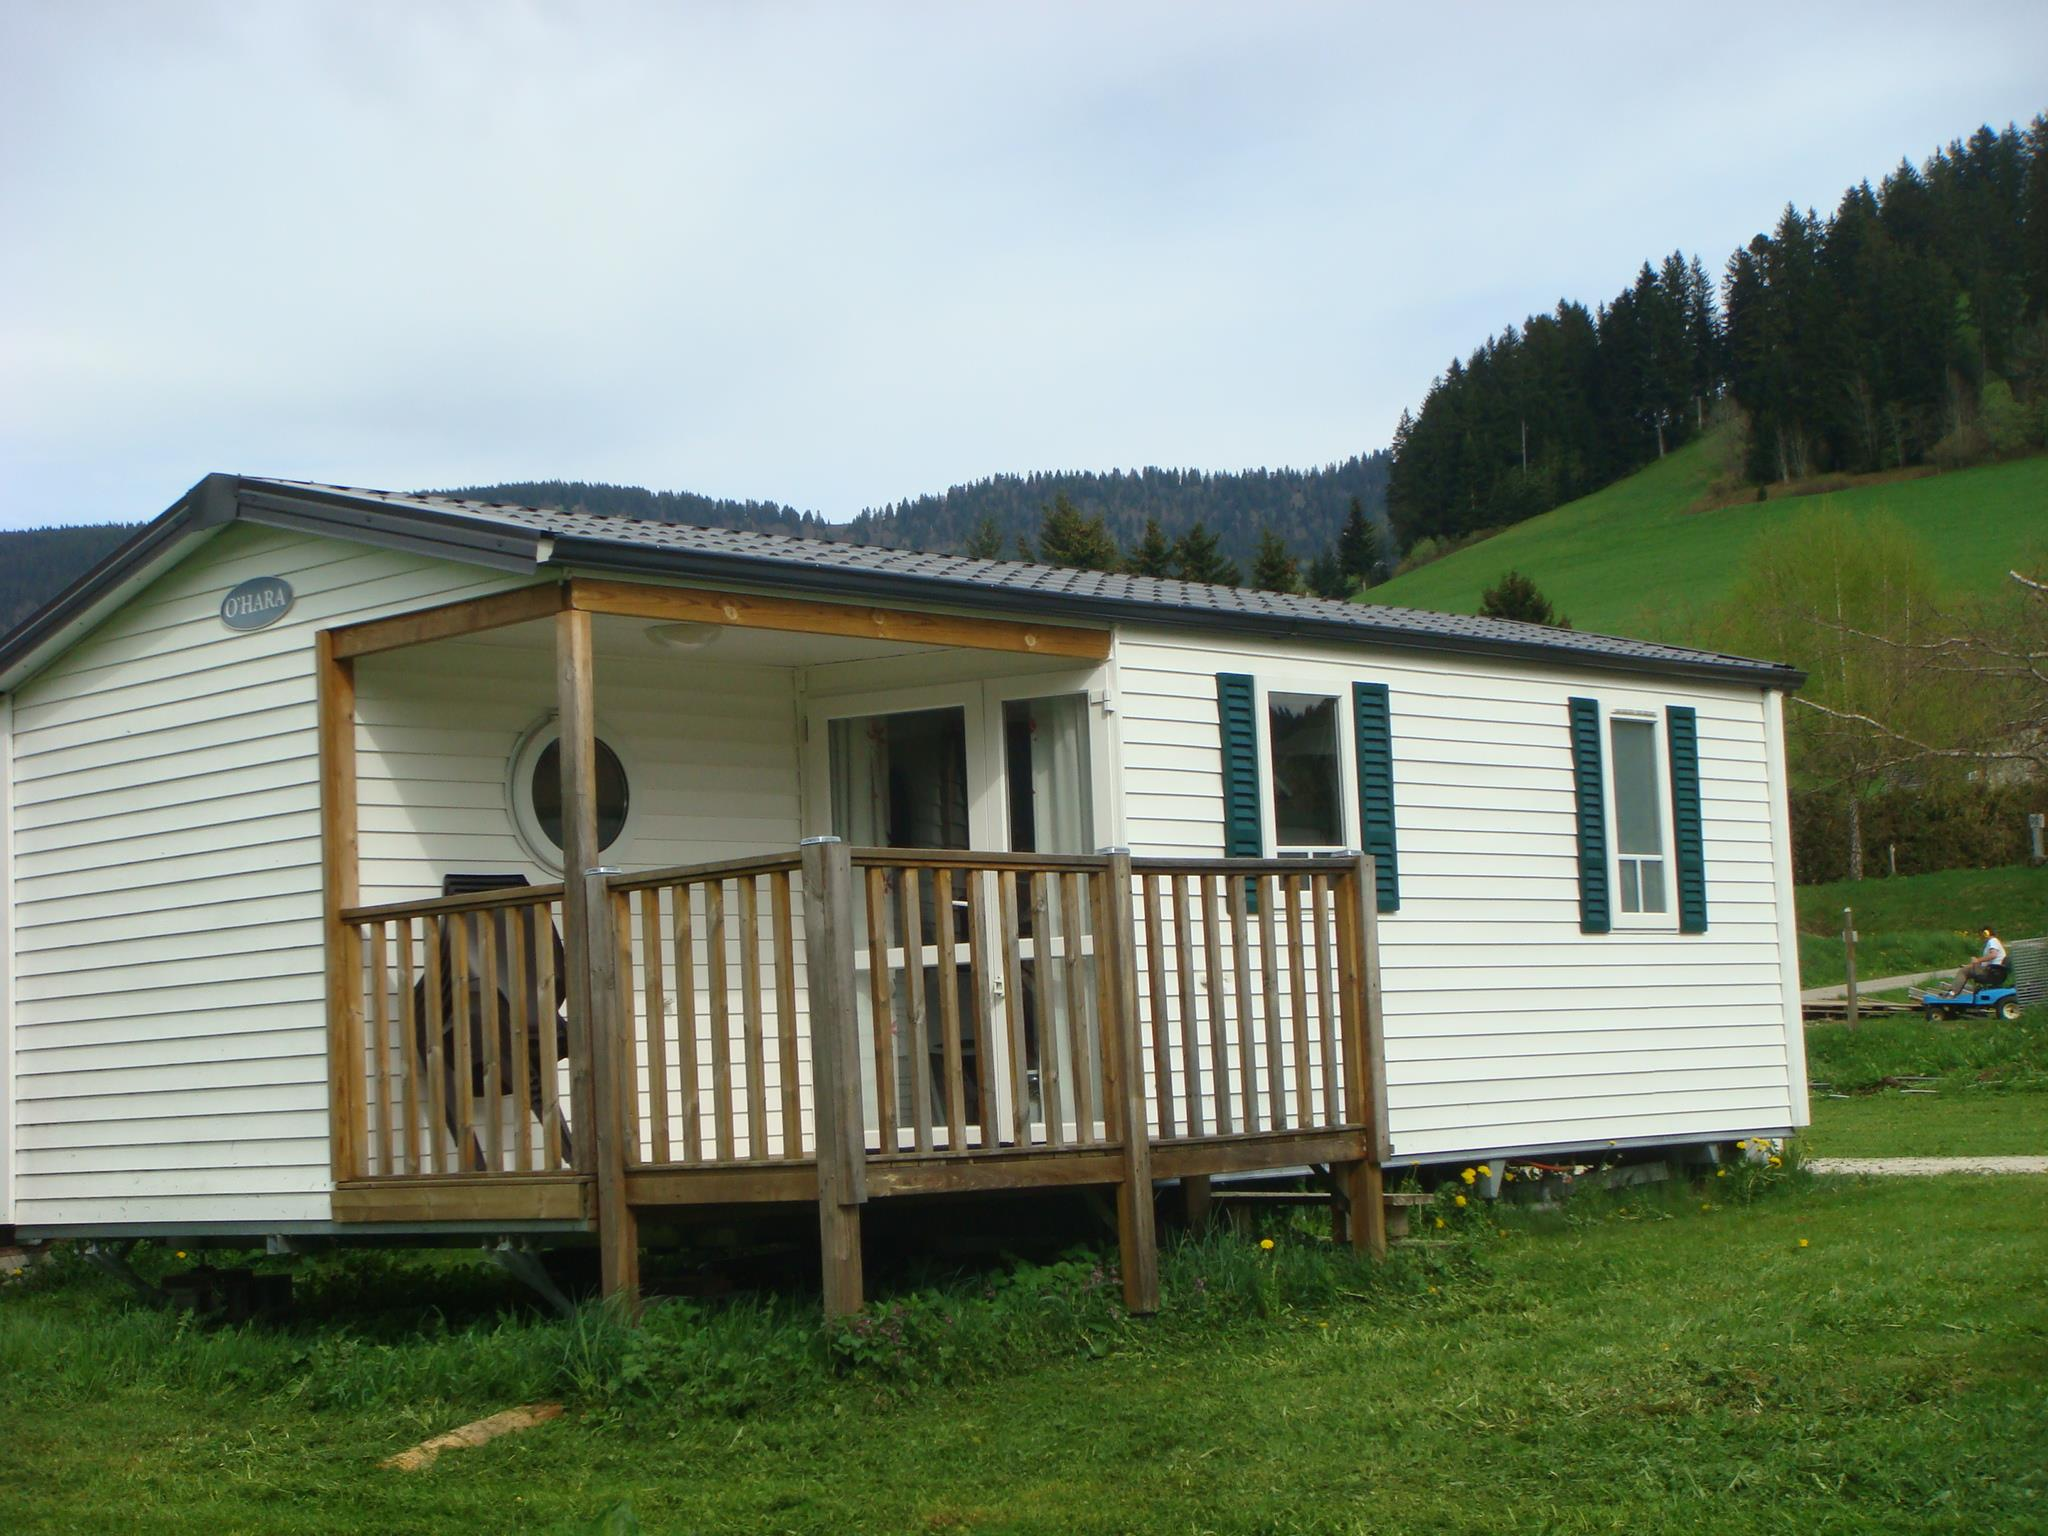 Rental - Mobile Home Confort Narcisse - 2 Bedrooms - 25M² + Half-Covered Terrace 7M² - Camping Le Vercors